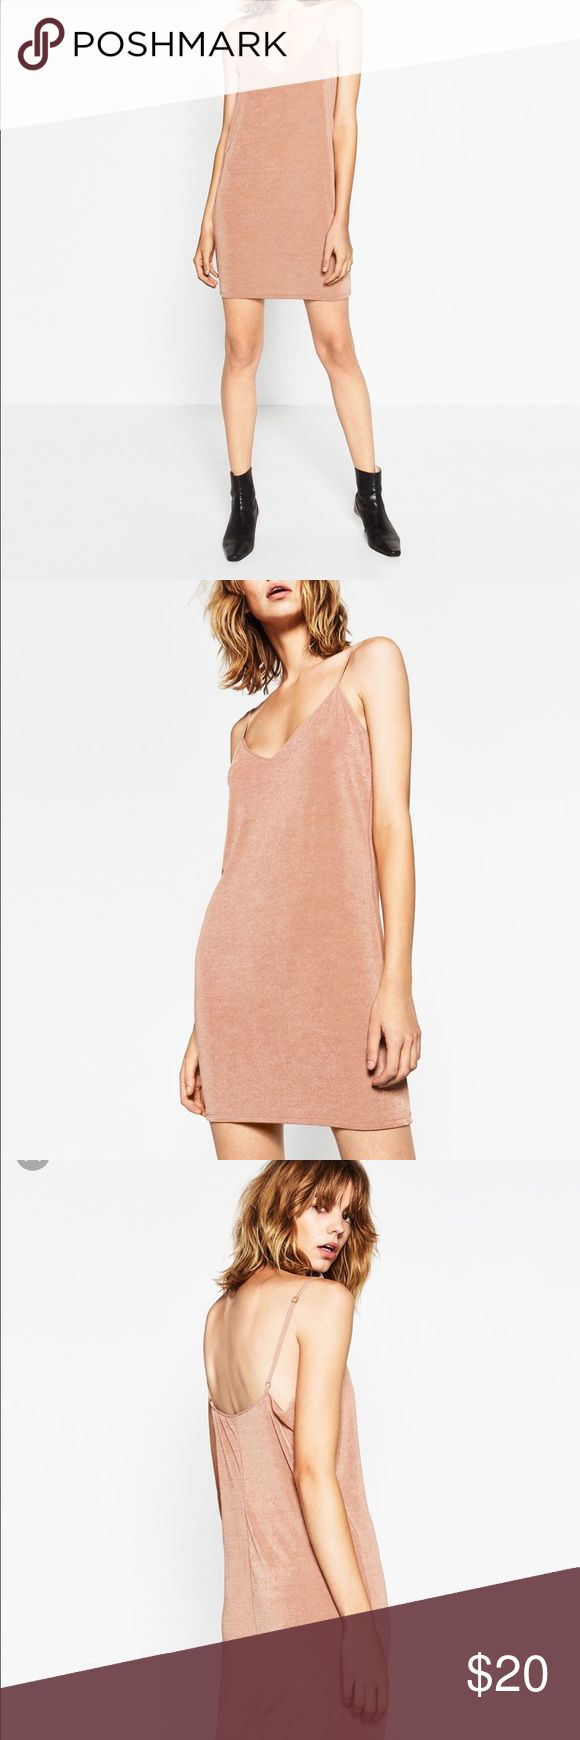 Zara nude/pink slip dress Size small, fits a little big. Nice material, perfect for a date night. Pair with nice denim jacket. Zara Dresses Mini